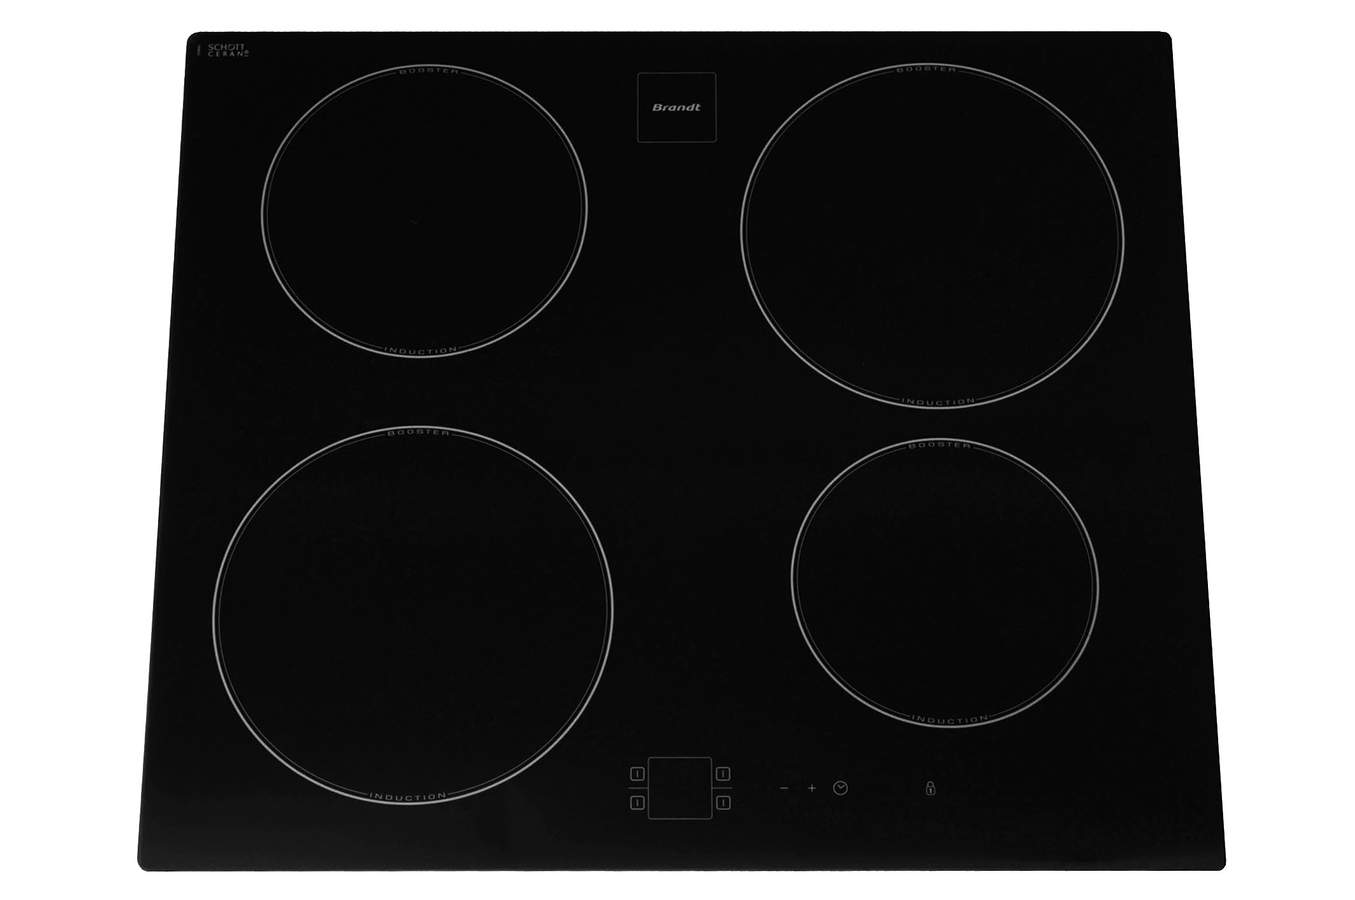 rayure sur plaque induction racloir pour cuisinire induction gefu blanko raclette grattoir pour. Black Bedroom Furniture Sets. Home Design Ideas